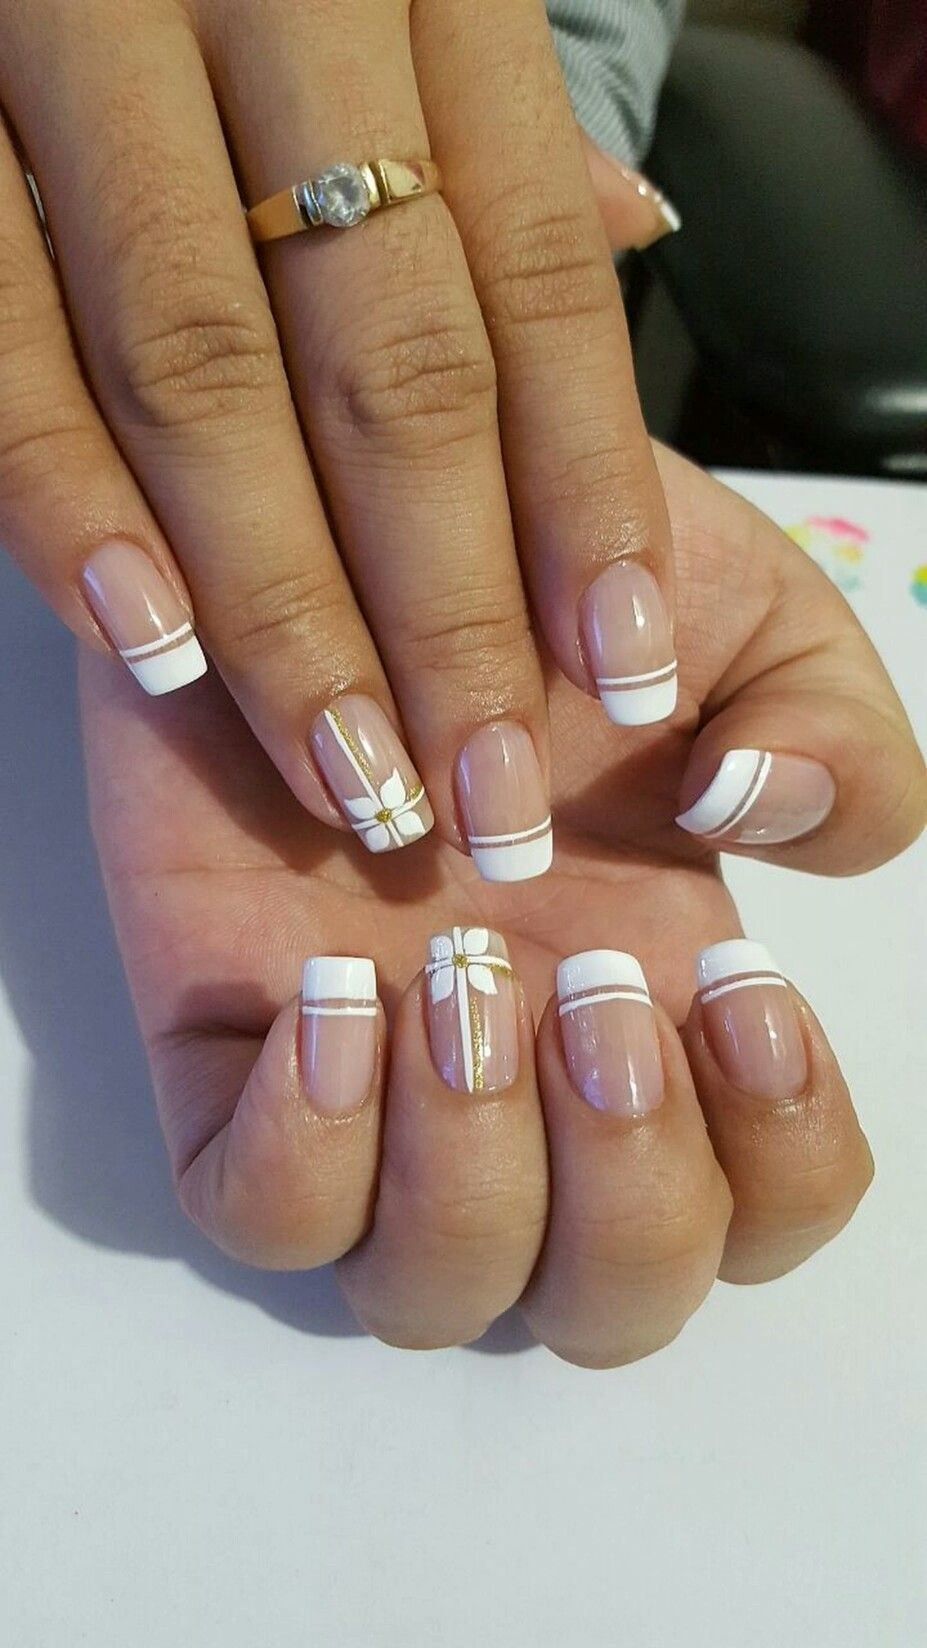 Pin By Nails By Nadia On Nails In 2018 Pinterest Unas